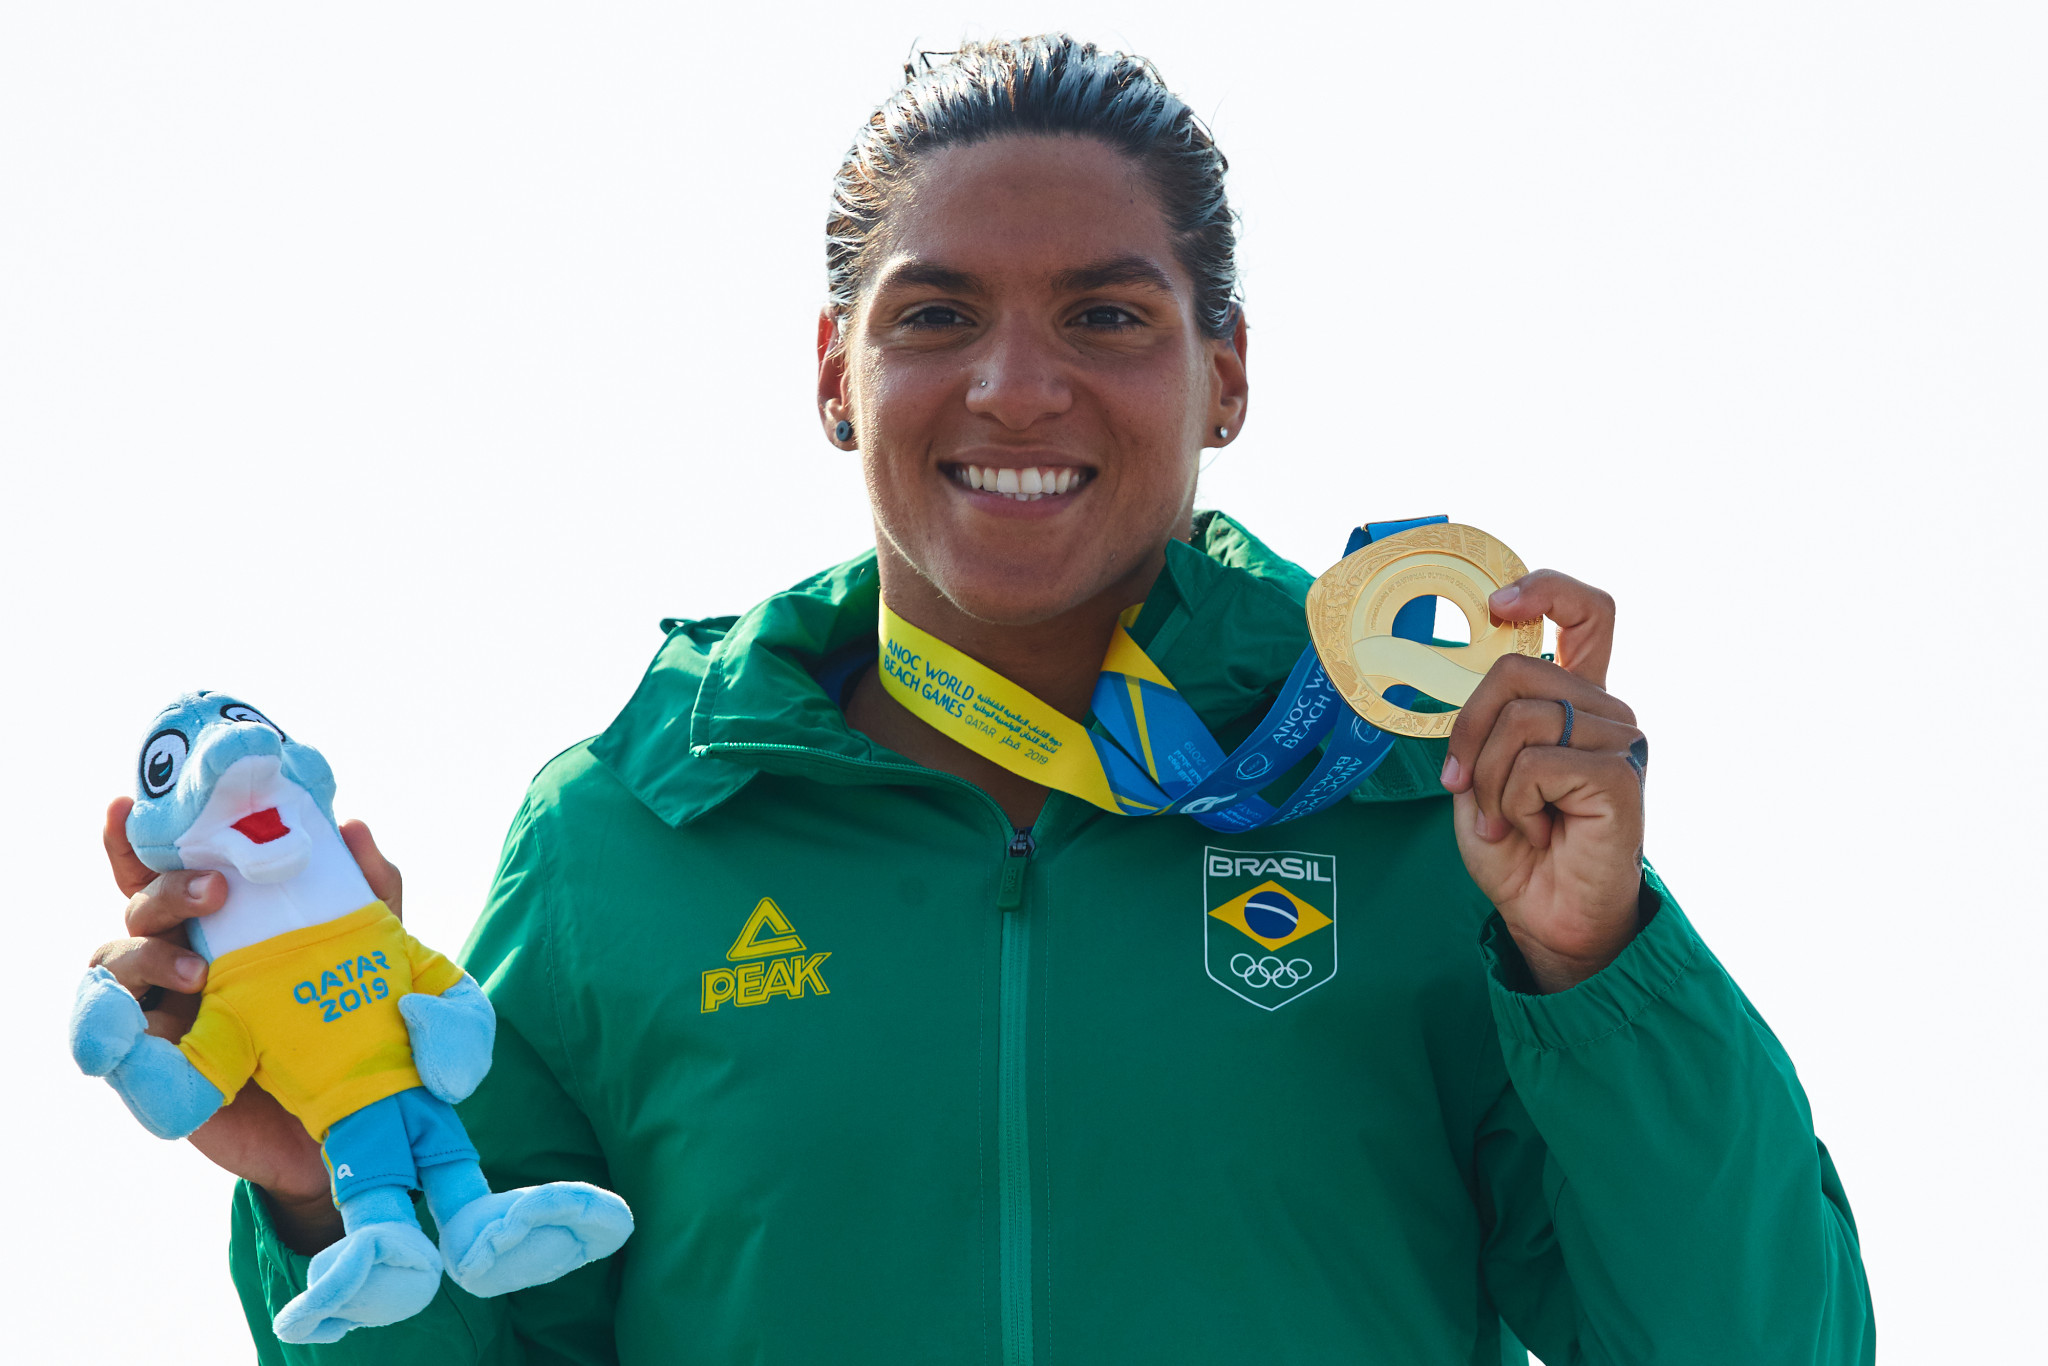 Brazil's Ana De Jesus Soares added ANOC World Beach Games gold to the one she had won at the Pan American Games earlier this year ©ANOC World Beach Games